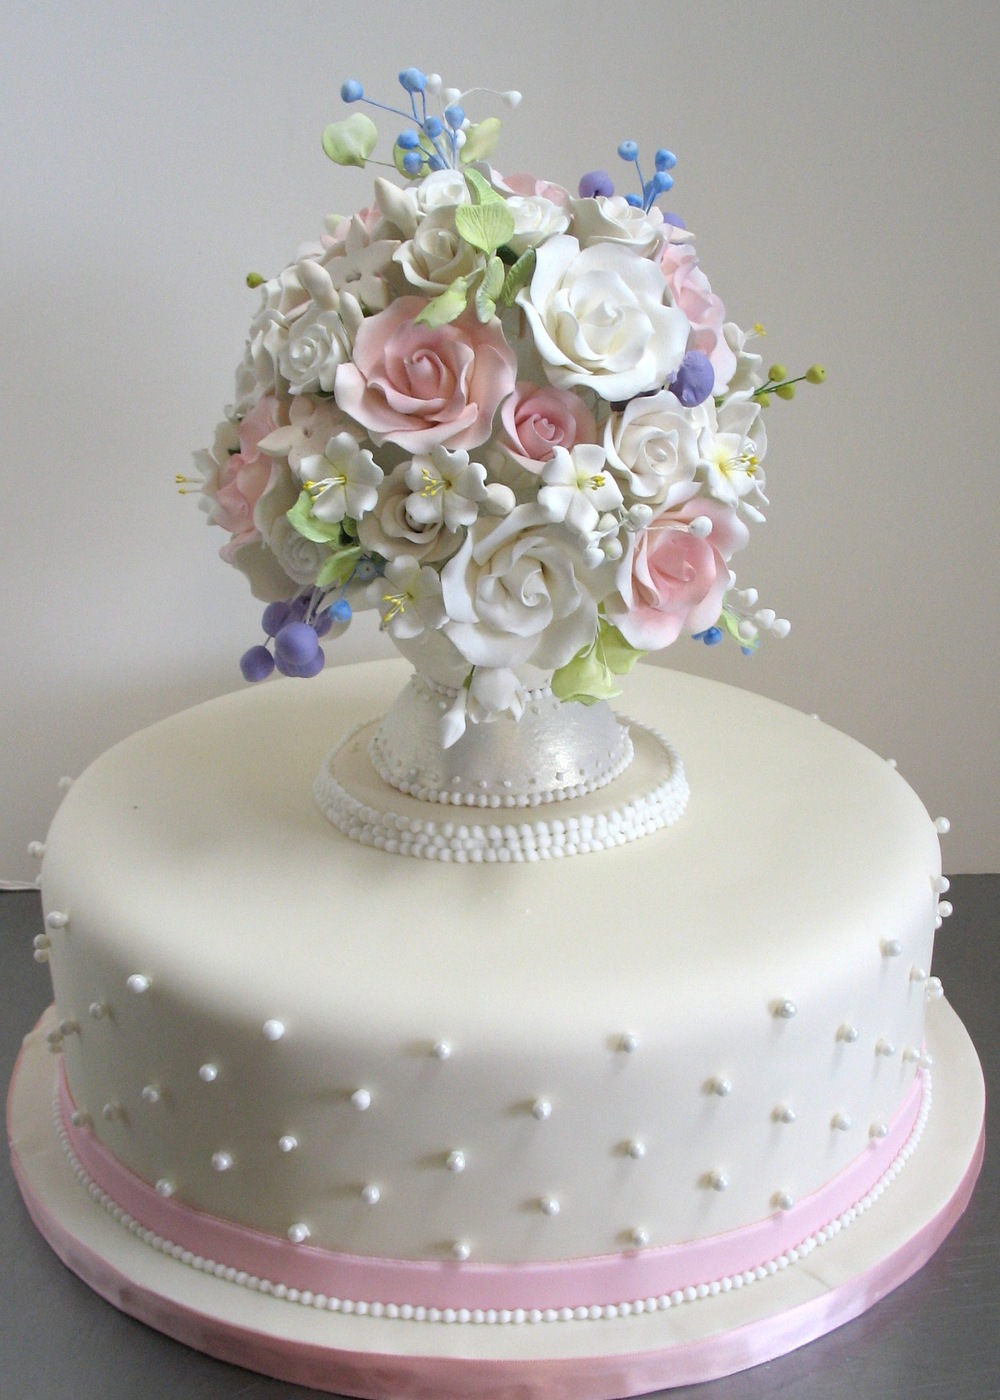 White cake with sugar vase